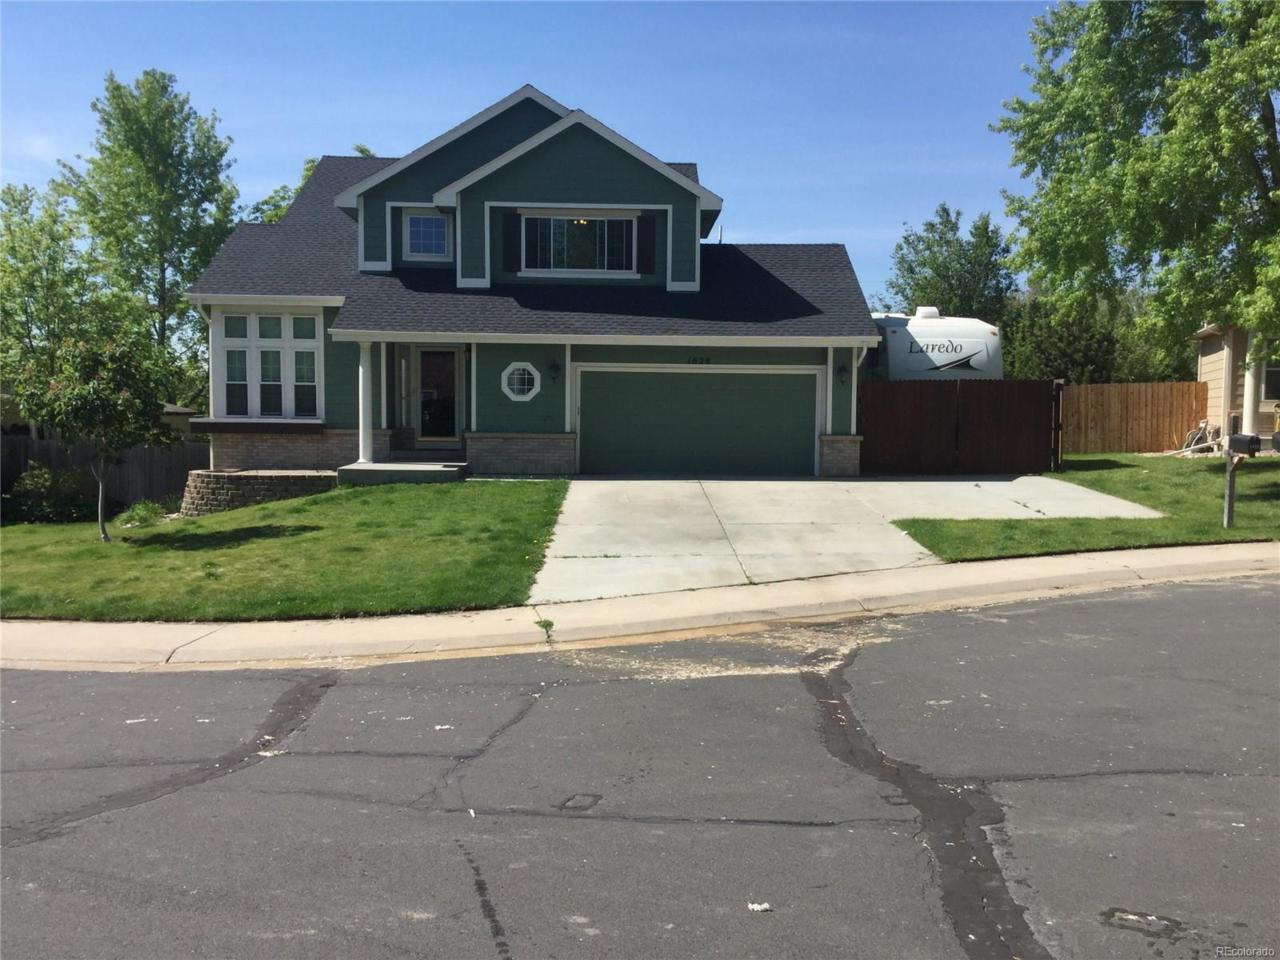 1628 E 96th Drive, Thornton, CO 80229 (MLS #6789223) :: 8z Real Estate